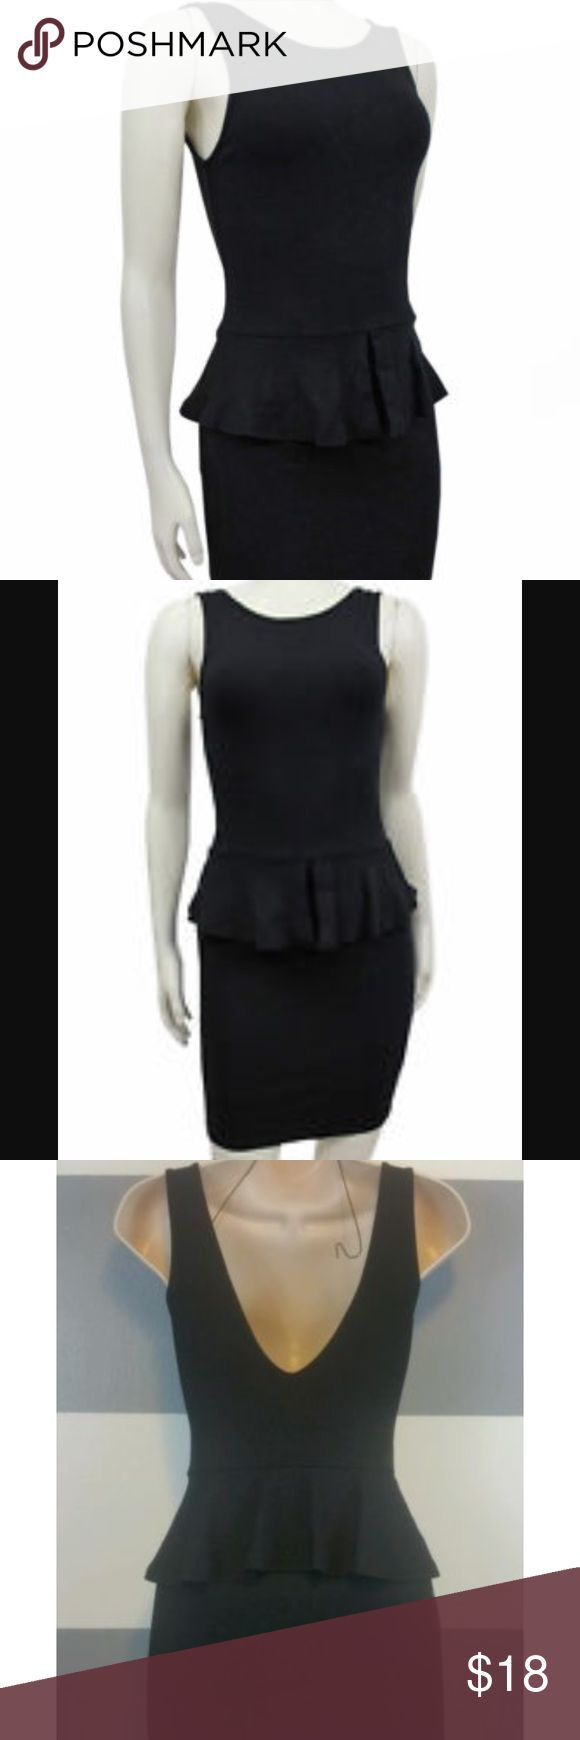 Zara black peplum dress! Zara basic black peplum dress. Can be formal to wear to work or dress up for a night out! Plunging back (see last picture)! Very versatile. In great condition, lightly worn. No rips/tears/stains. Zara Dresses Mini